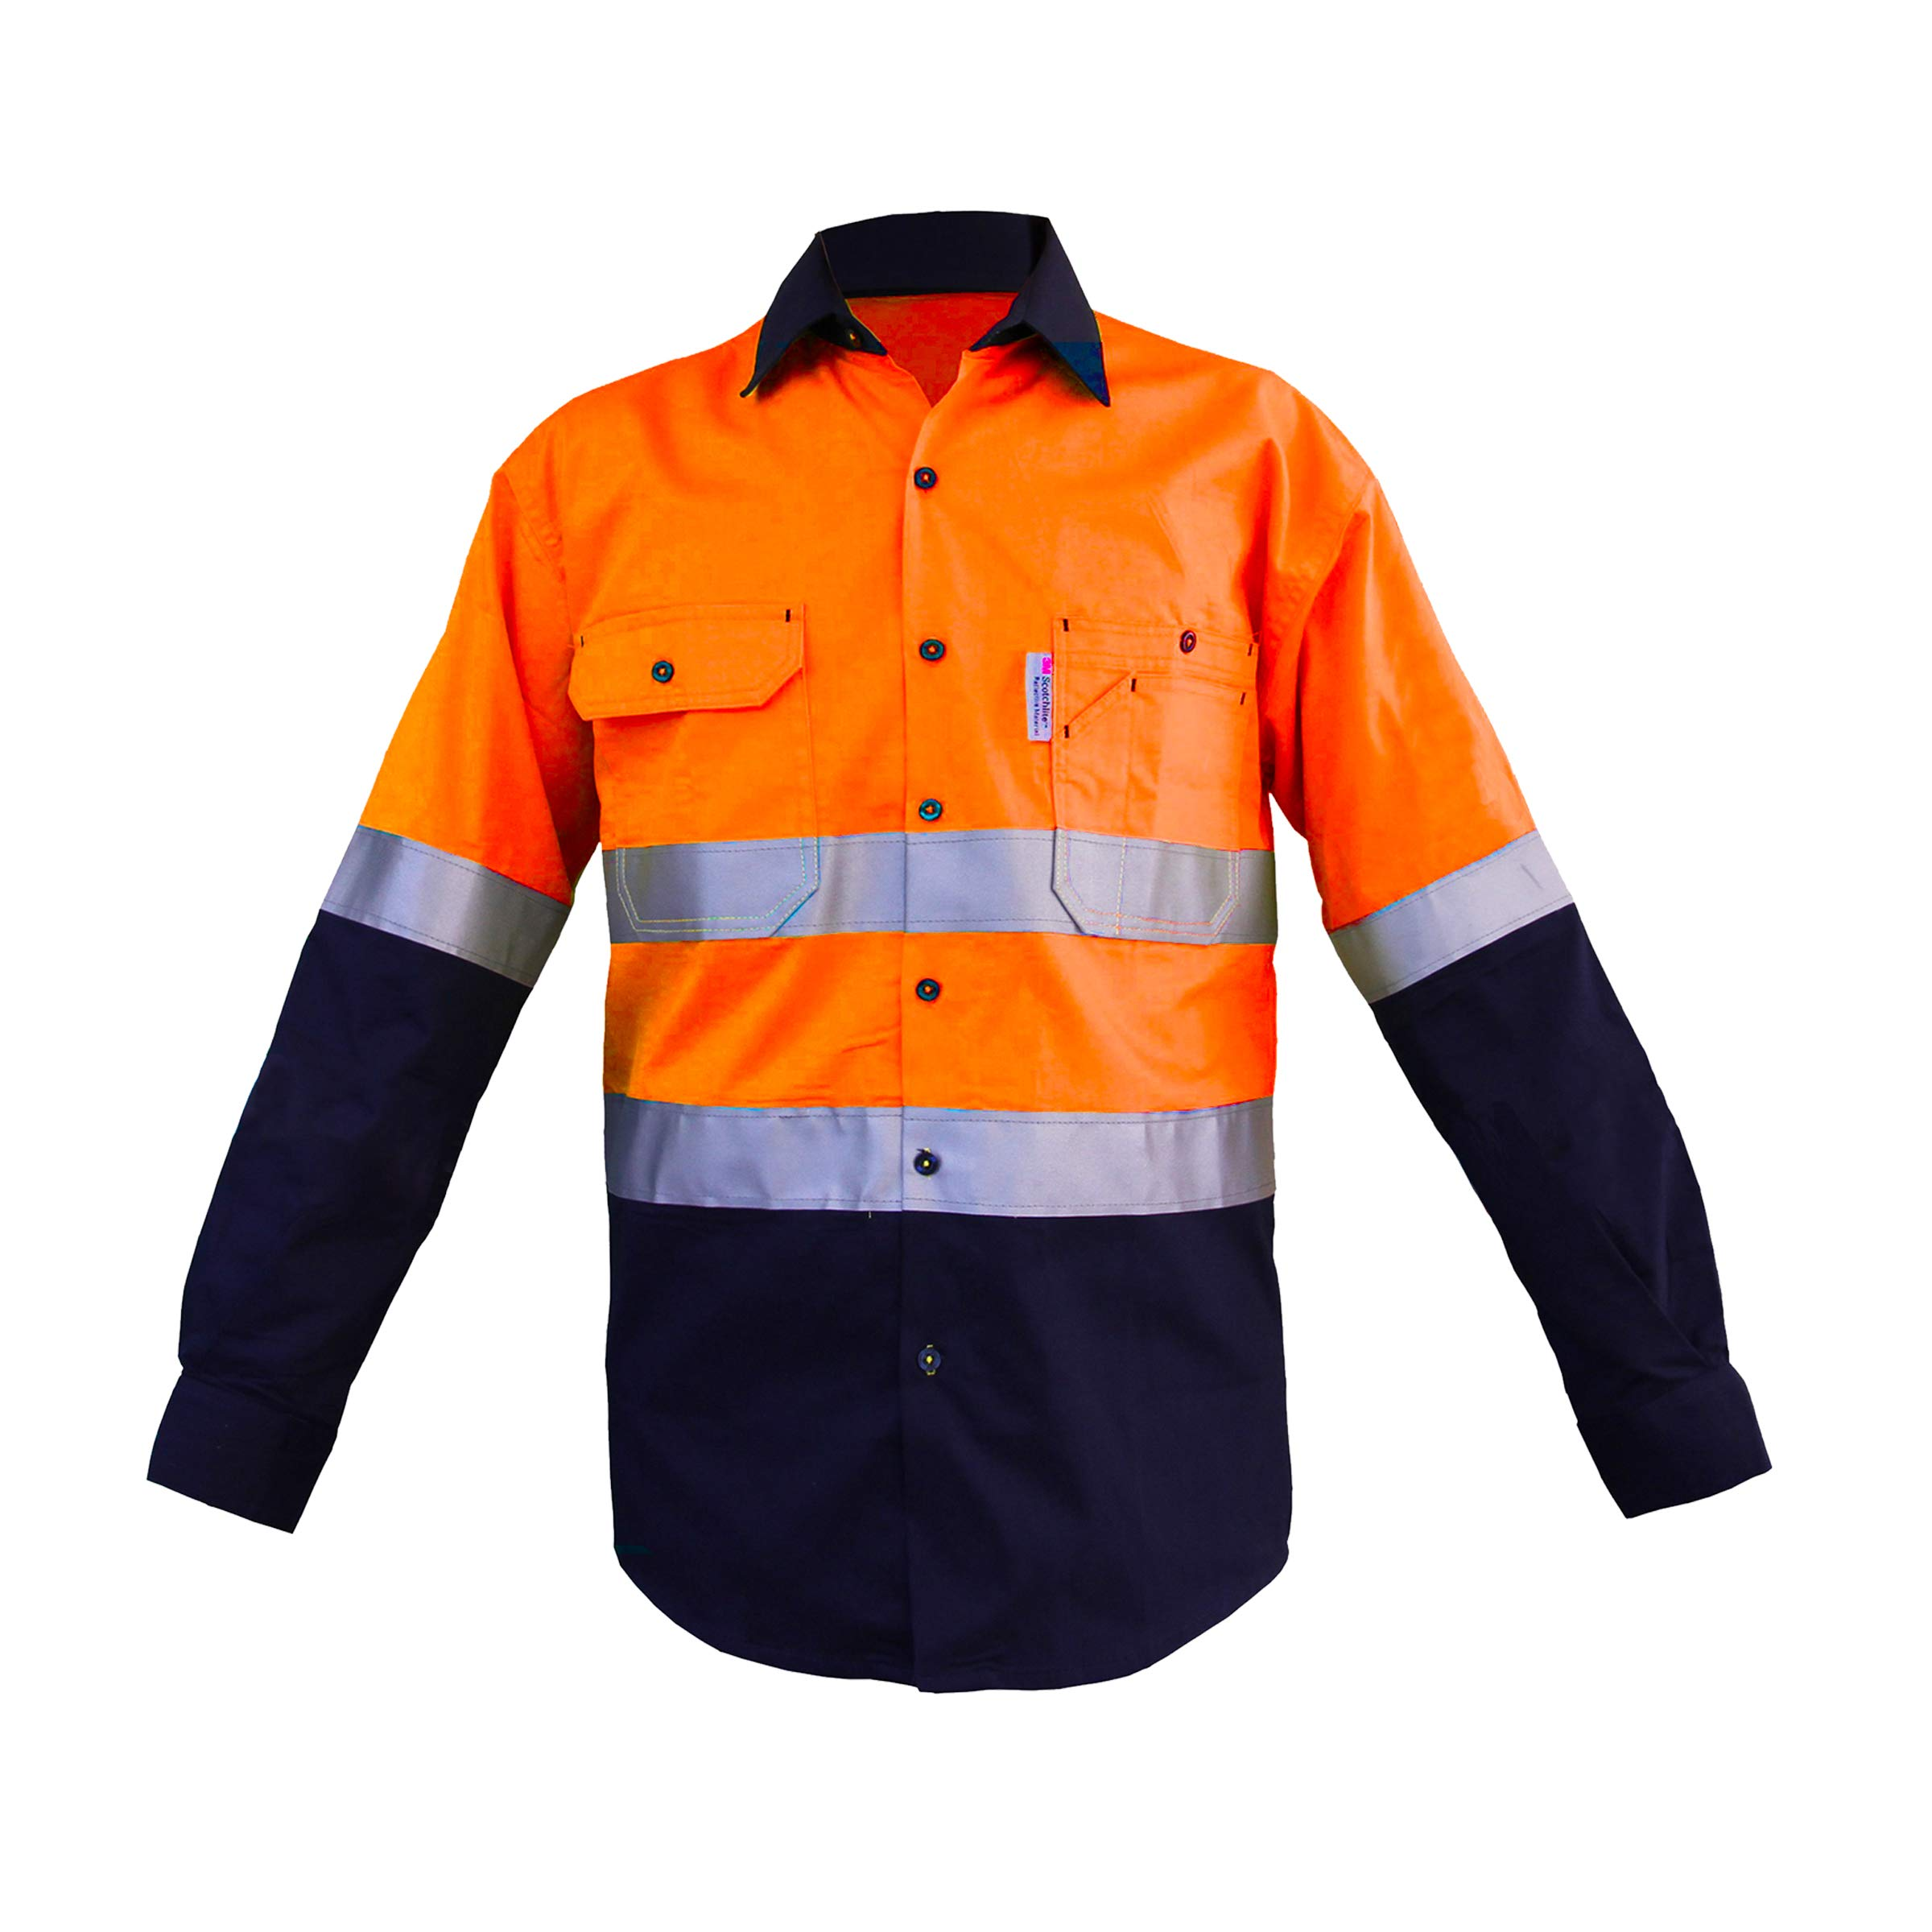 Construction Work Shirts for Men Fluorescent Orange/Navy, Button up Long Sleeve Safety Shirt Class 2 Level 155gsm pre-Shrunk 100% Cotton Drill (Medium)